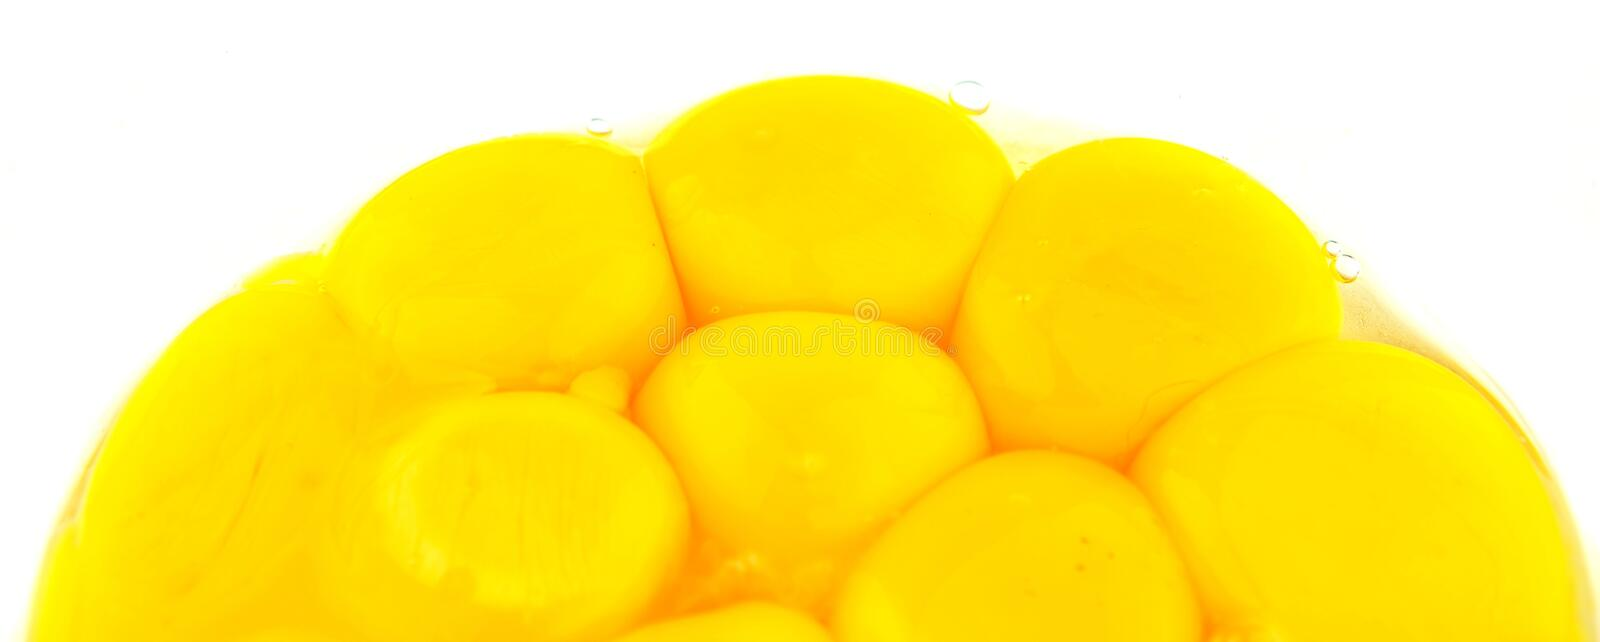 Egg Yolks Close Up View II stock image